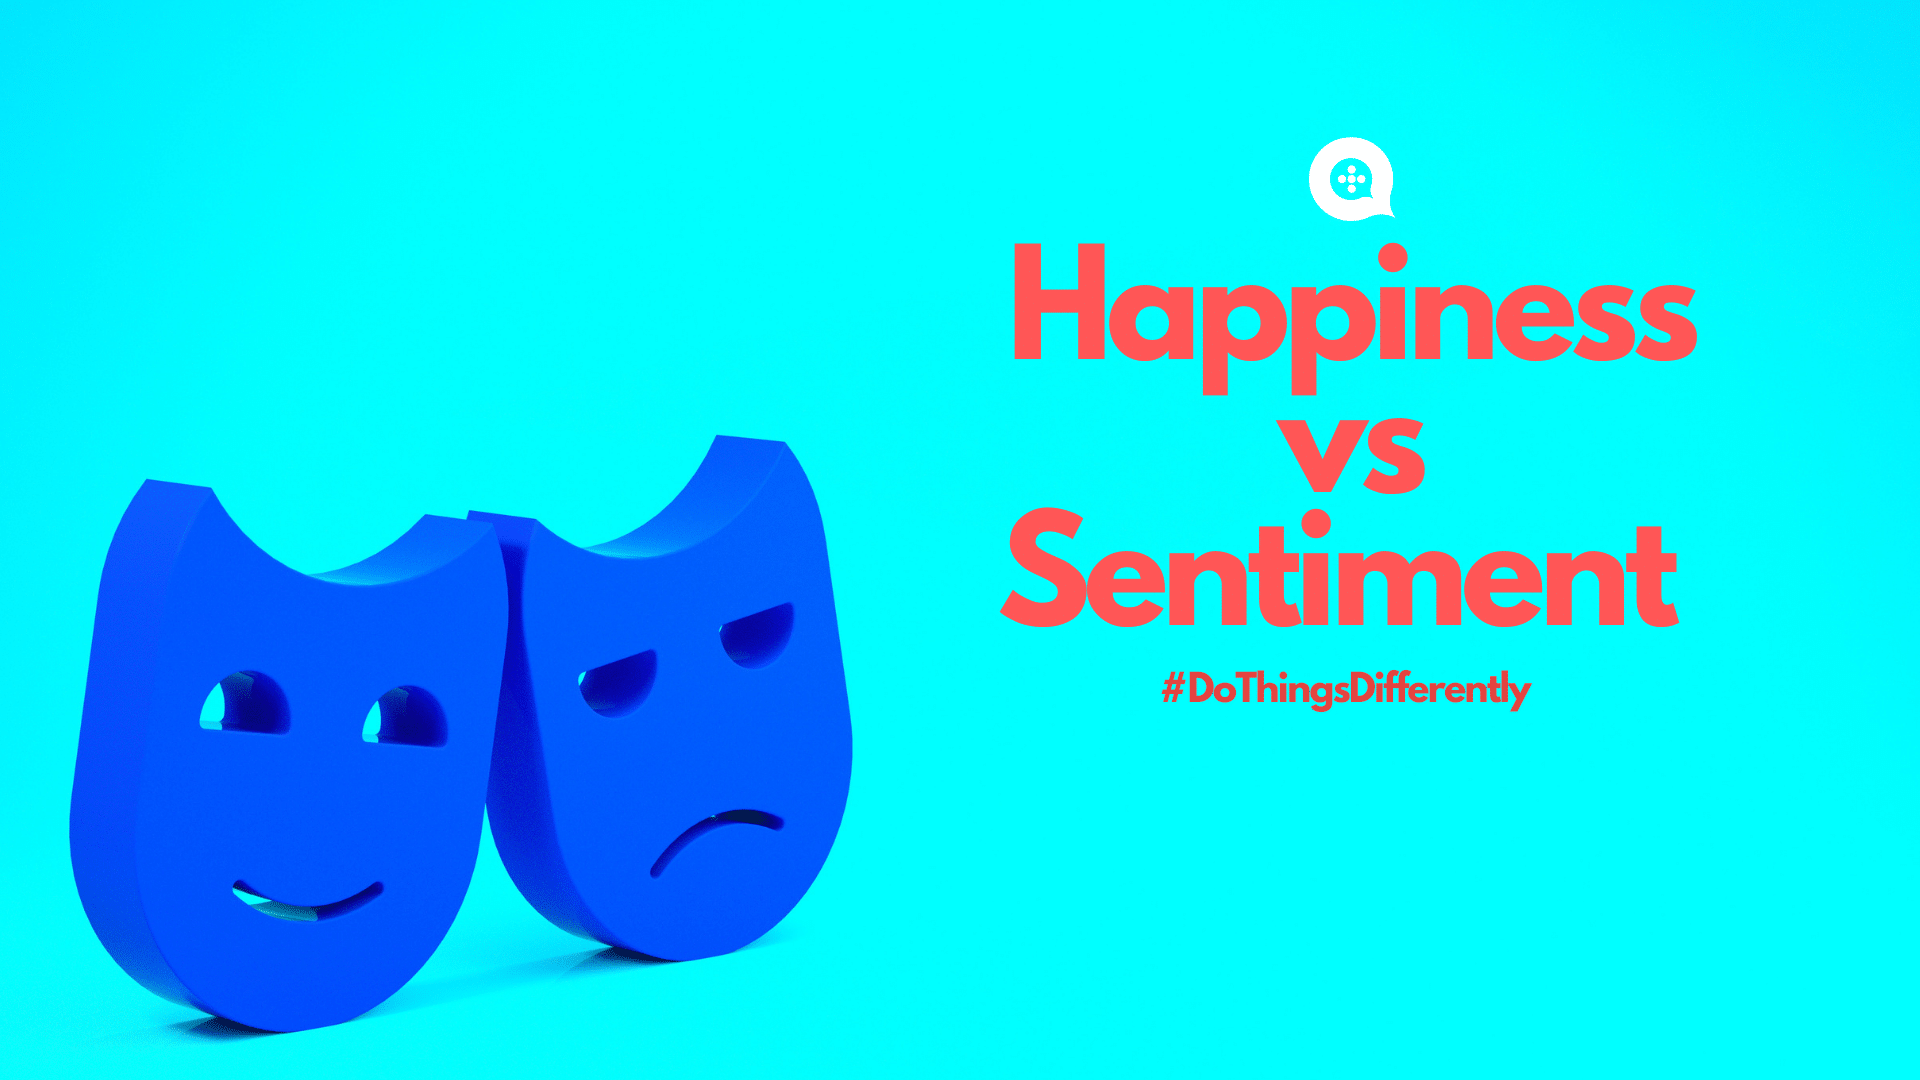 One happy face one sad face on blue background